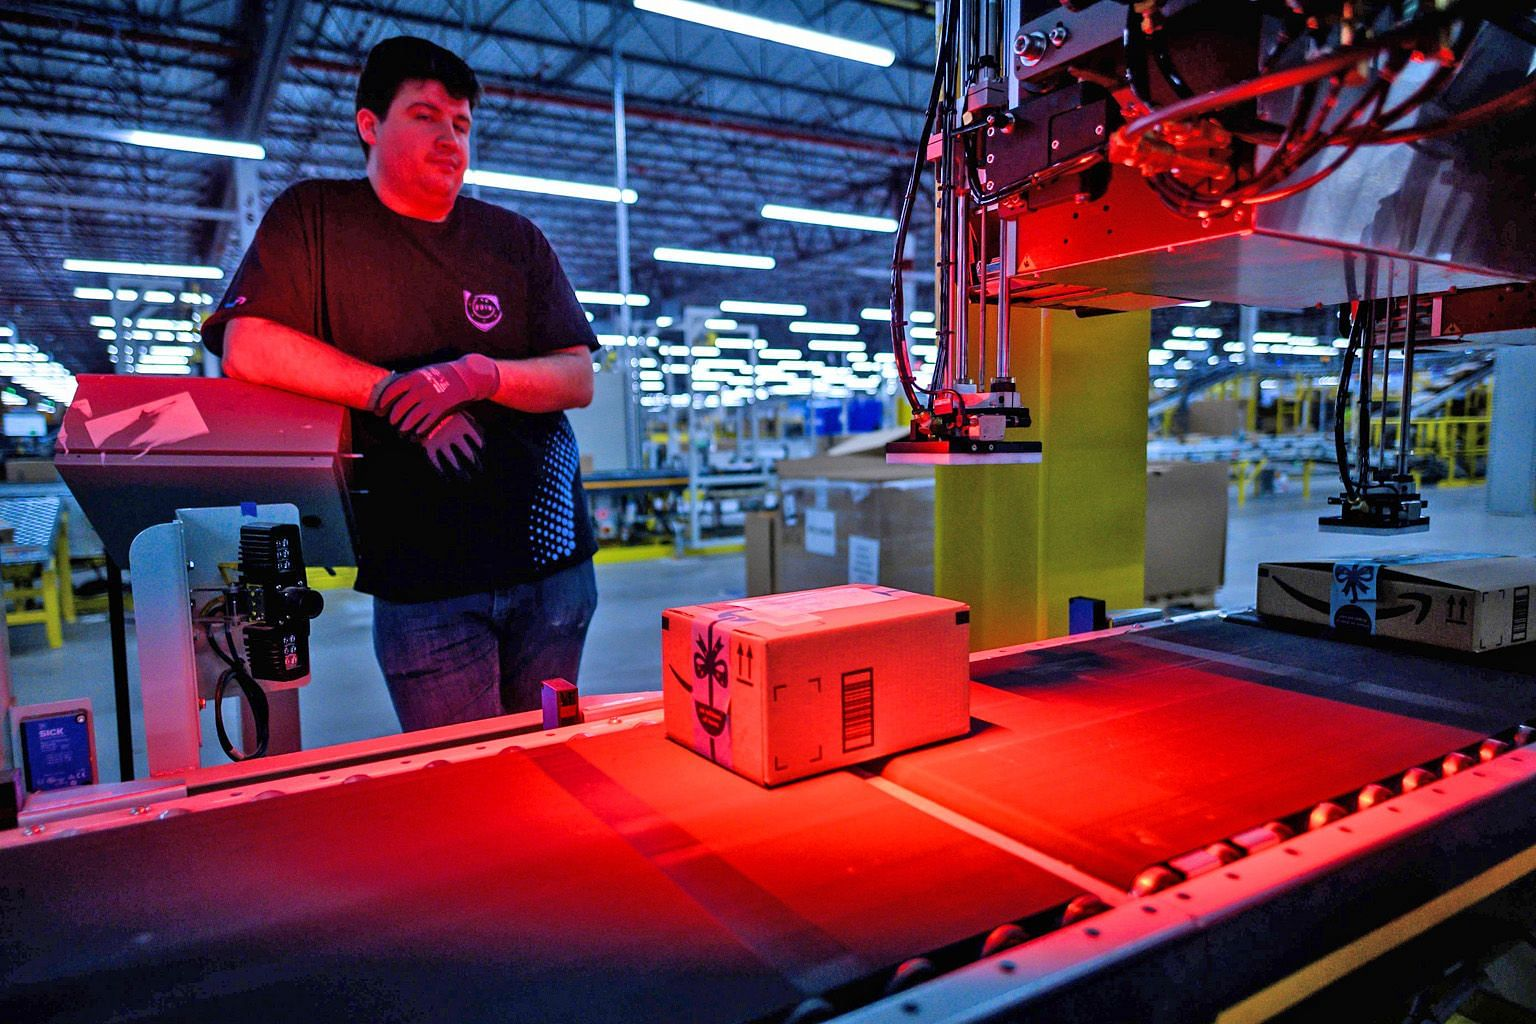 Amazon's fulfilment centre in Staten Island, New York. The writer says his finest moments of customer experience have been in dealing with Amazon staff who are empowered to take significant decisions relating to customer purchases and hence transport